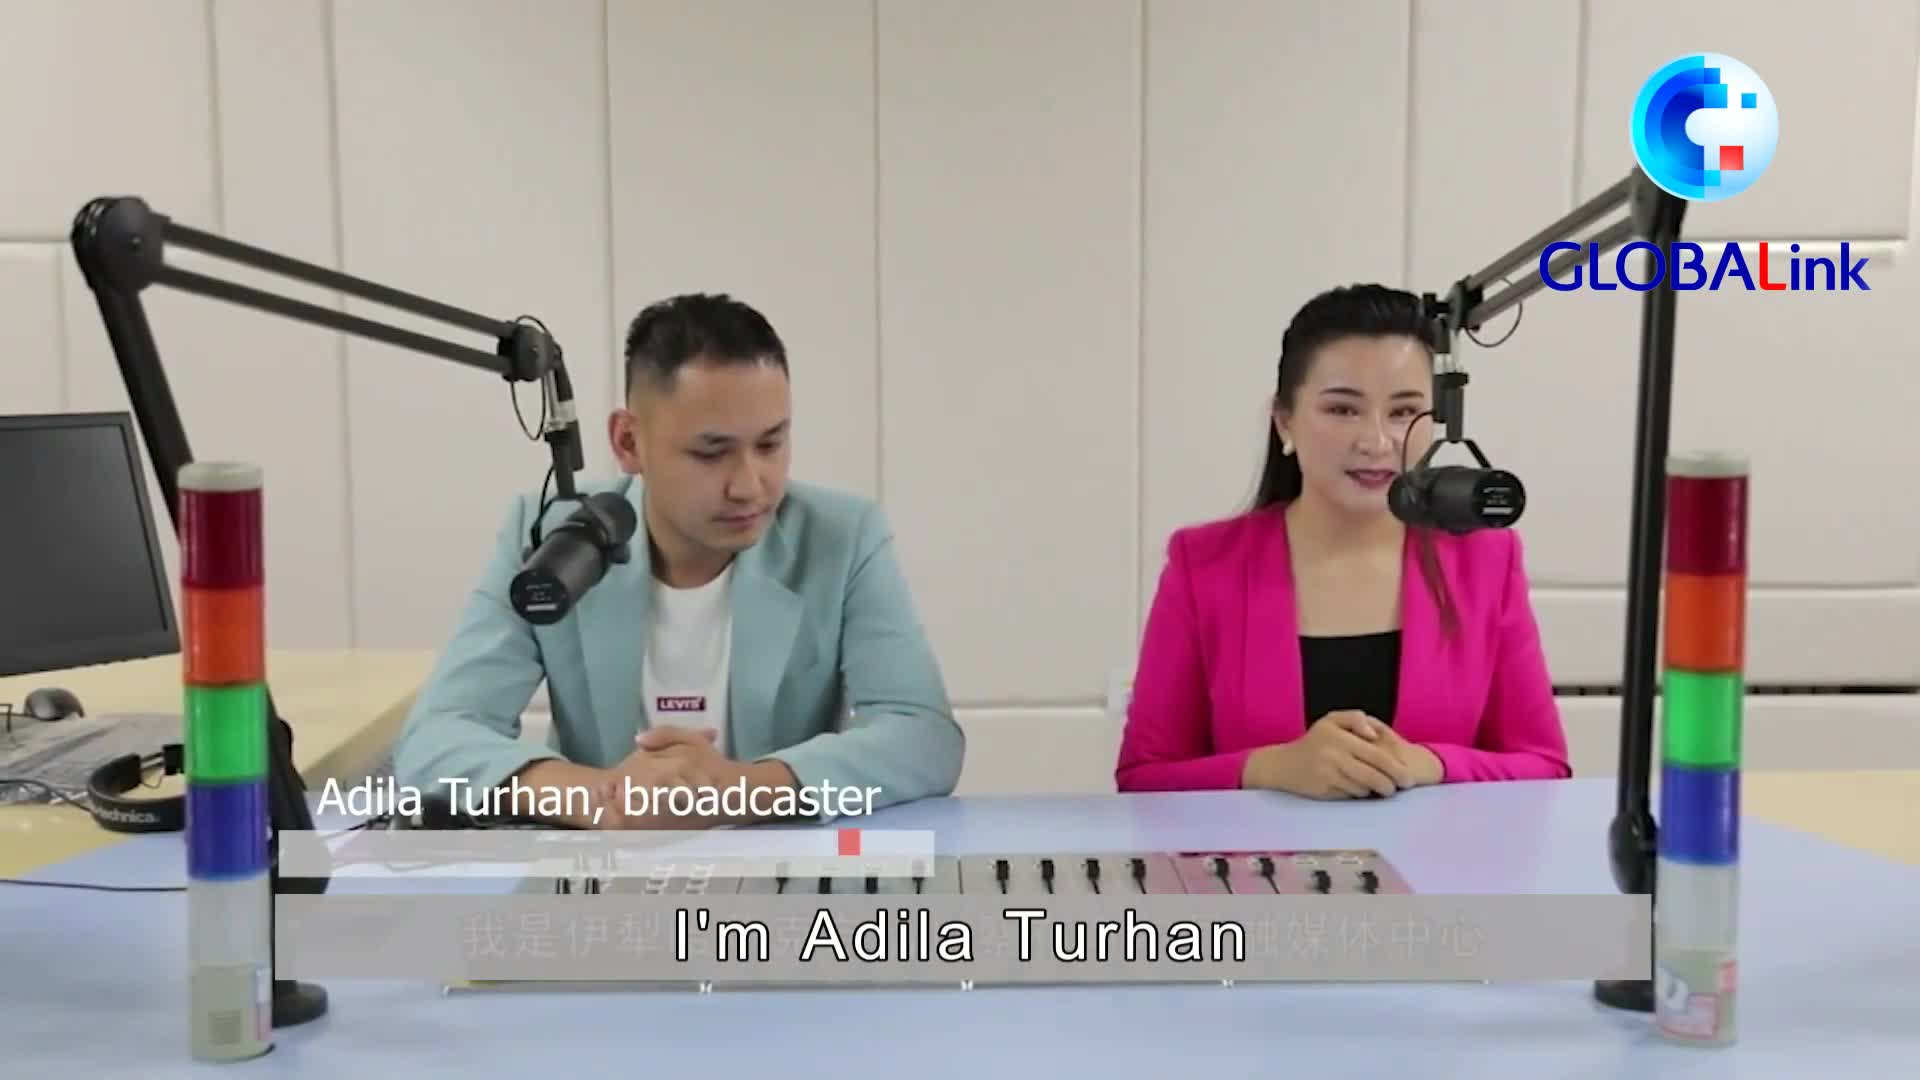 GLOBALink | #RealLifeXinjiang: Get inside local broadcast studios with a Uygur host